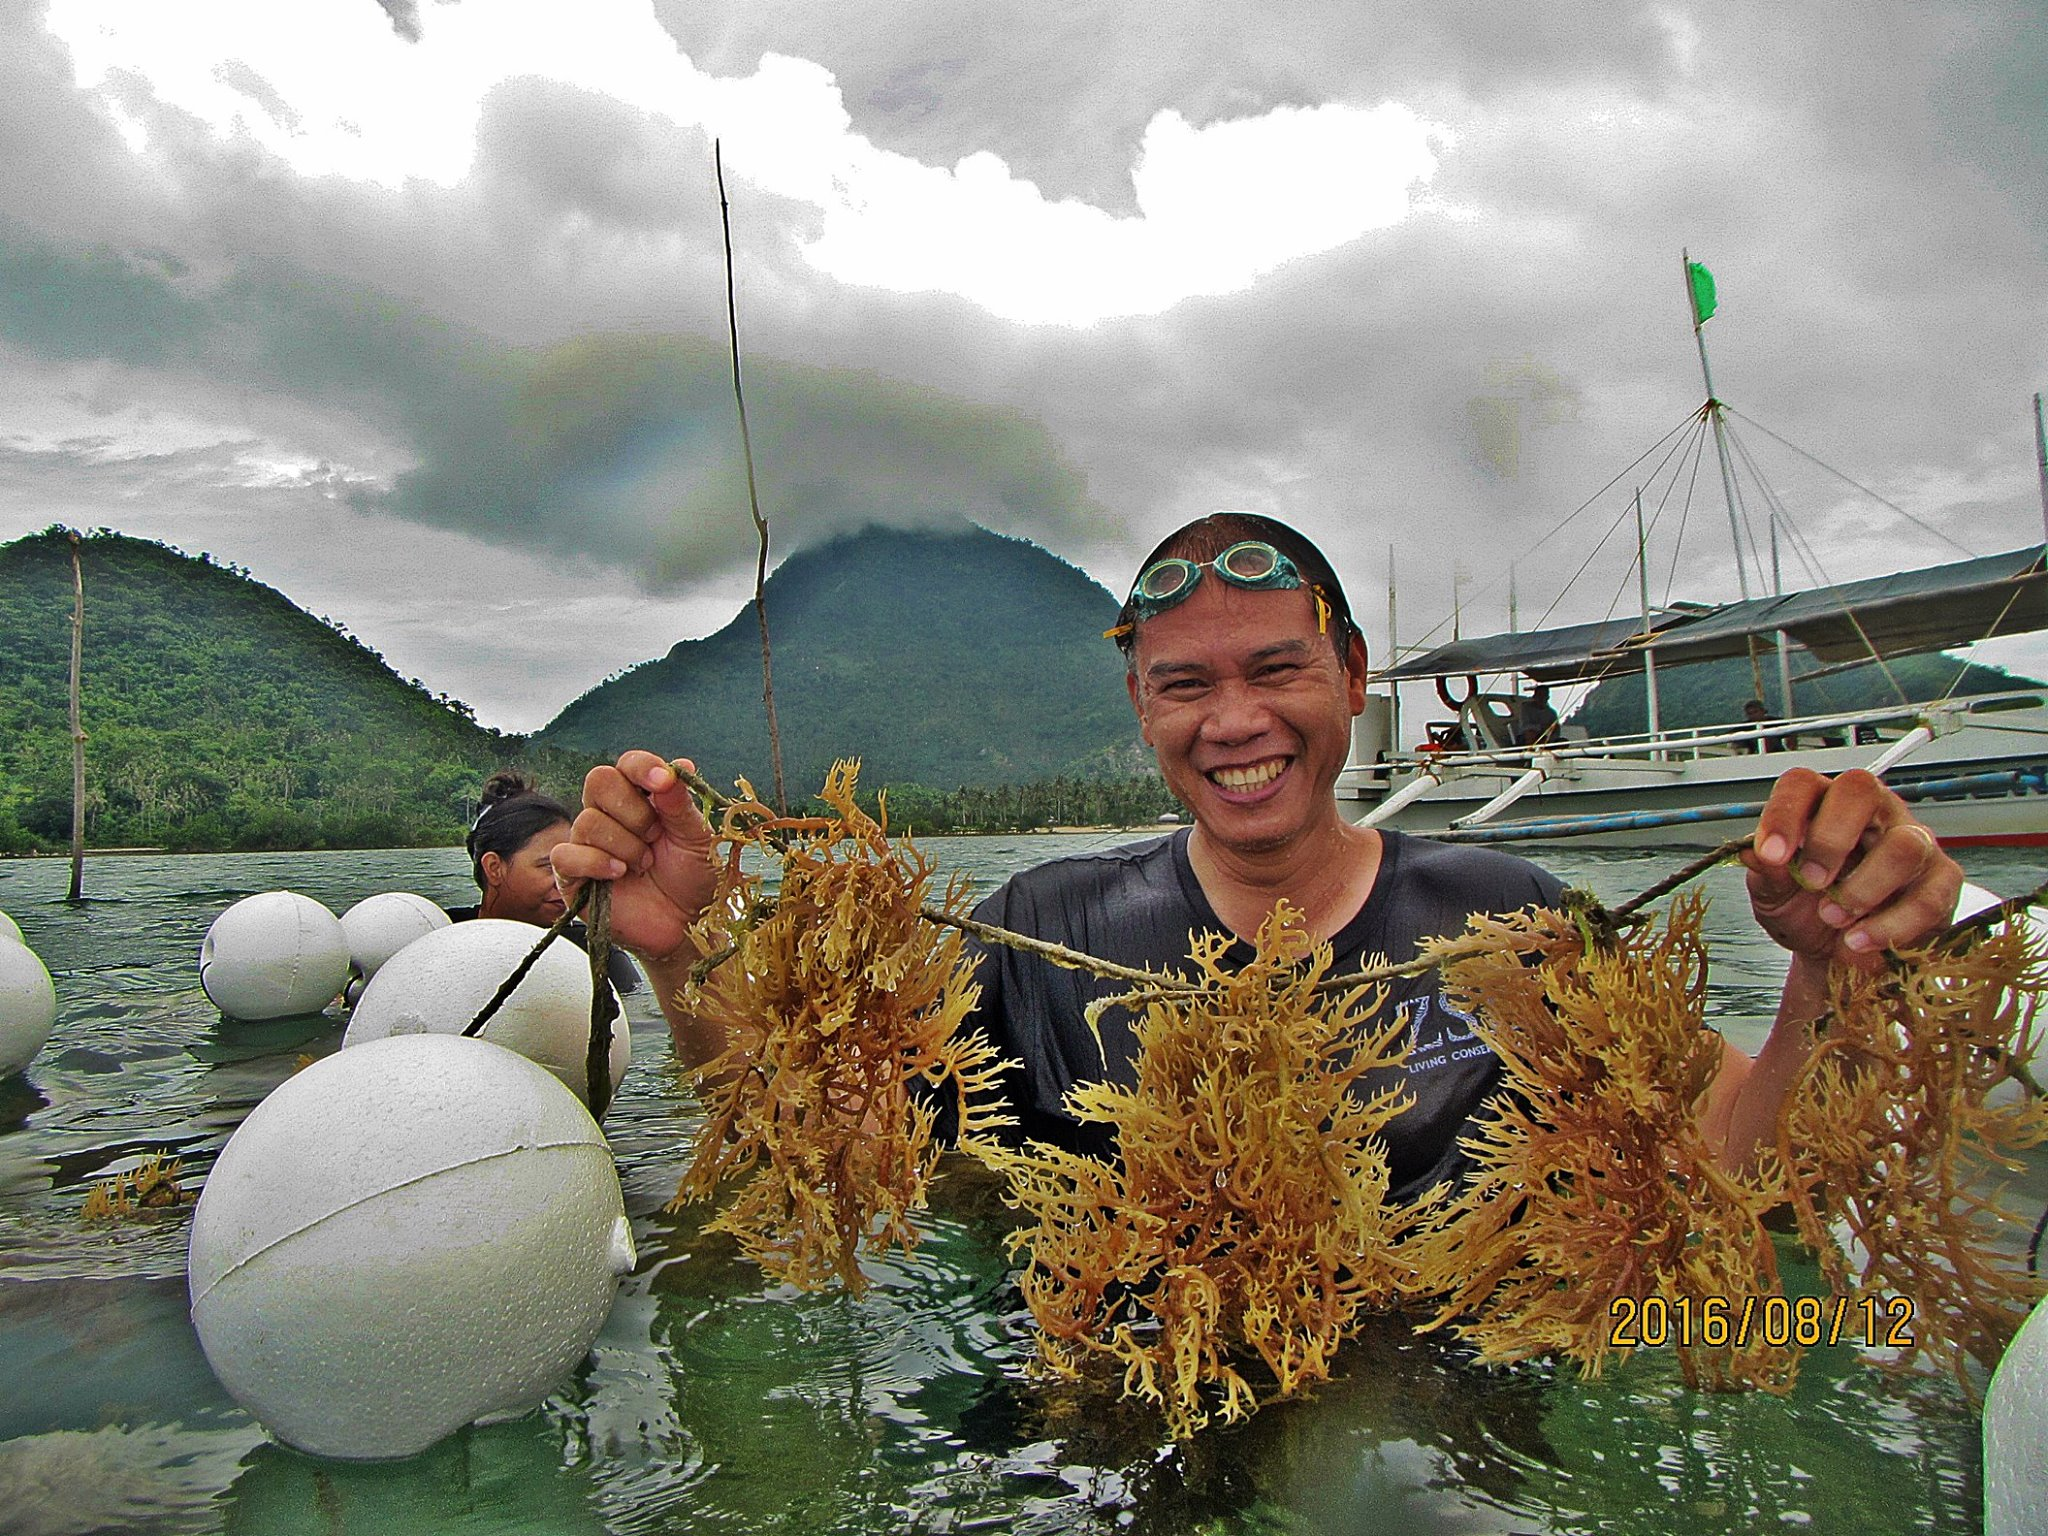 Phillipines 25-024 Fisherman with seaweed, Credit - ZSL